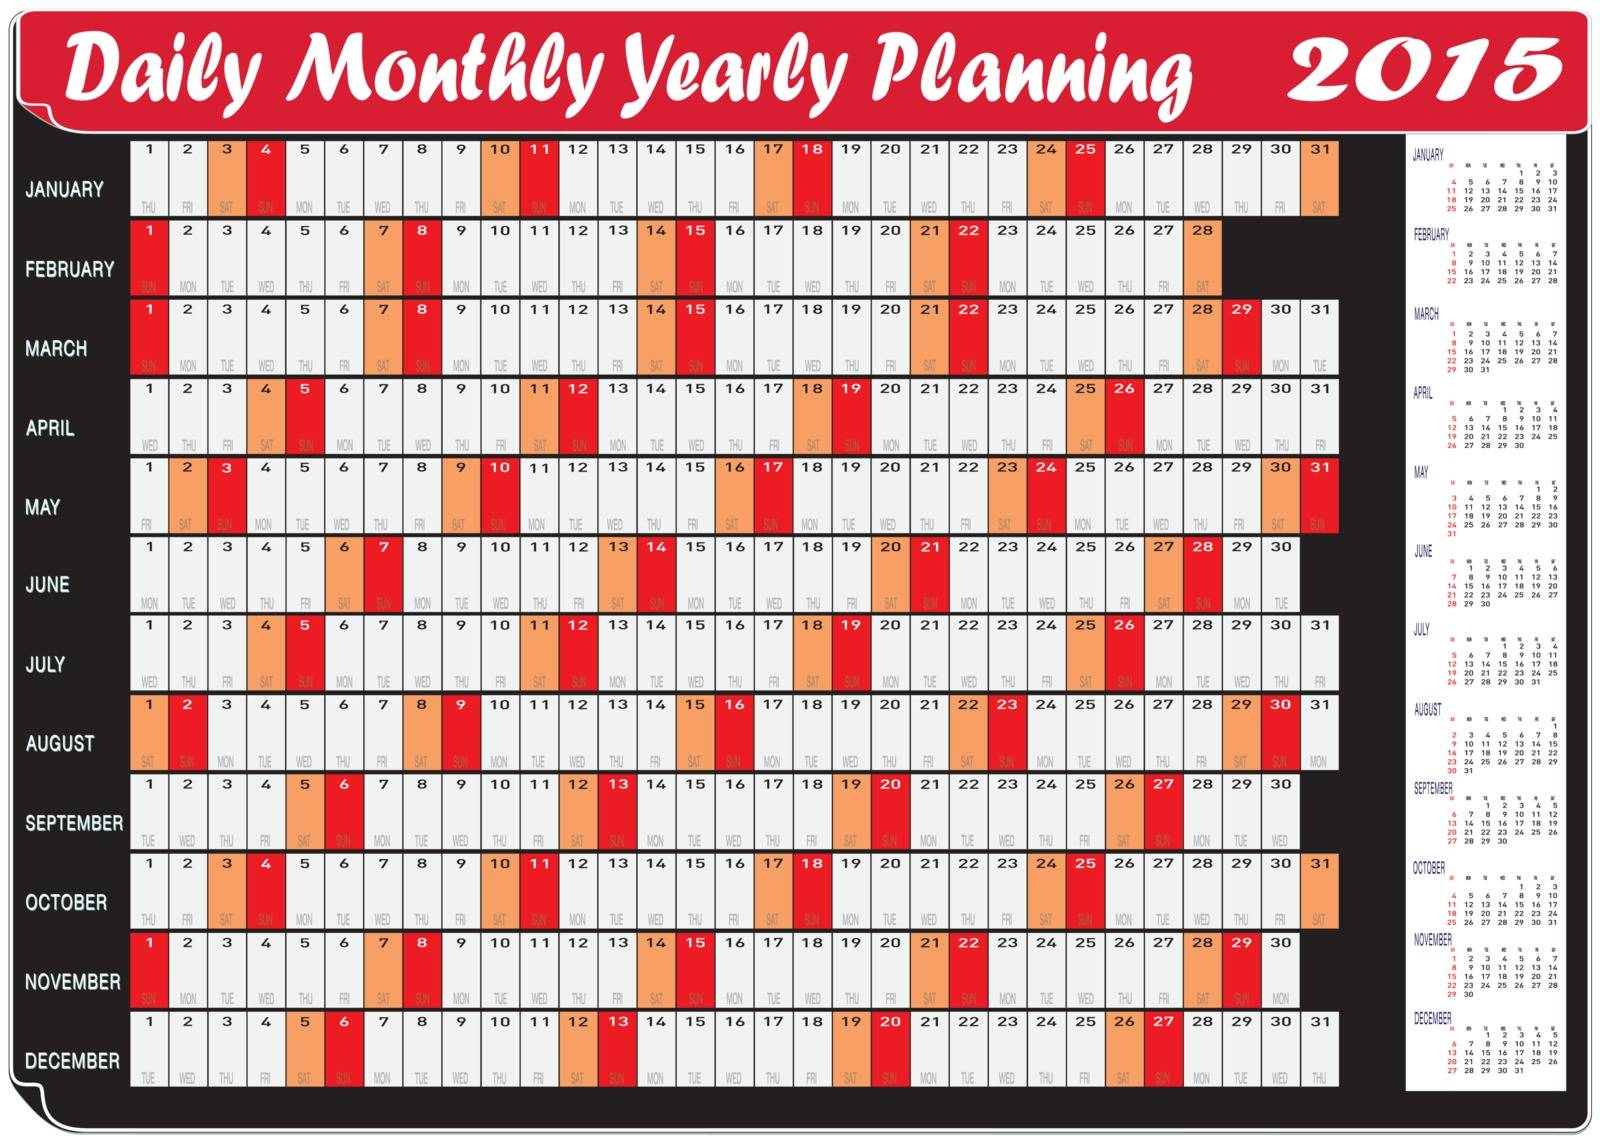 Vector of Planning Chart of Daily Monthly Yearly 2015.